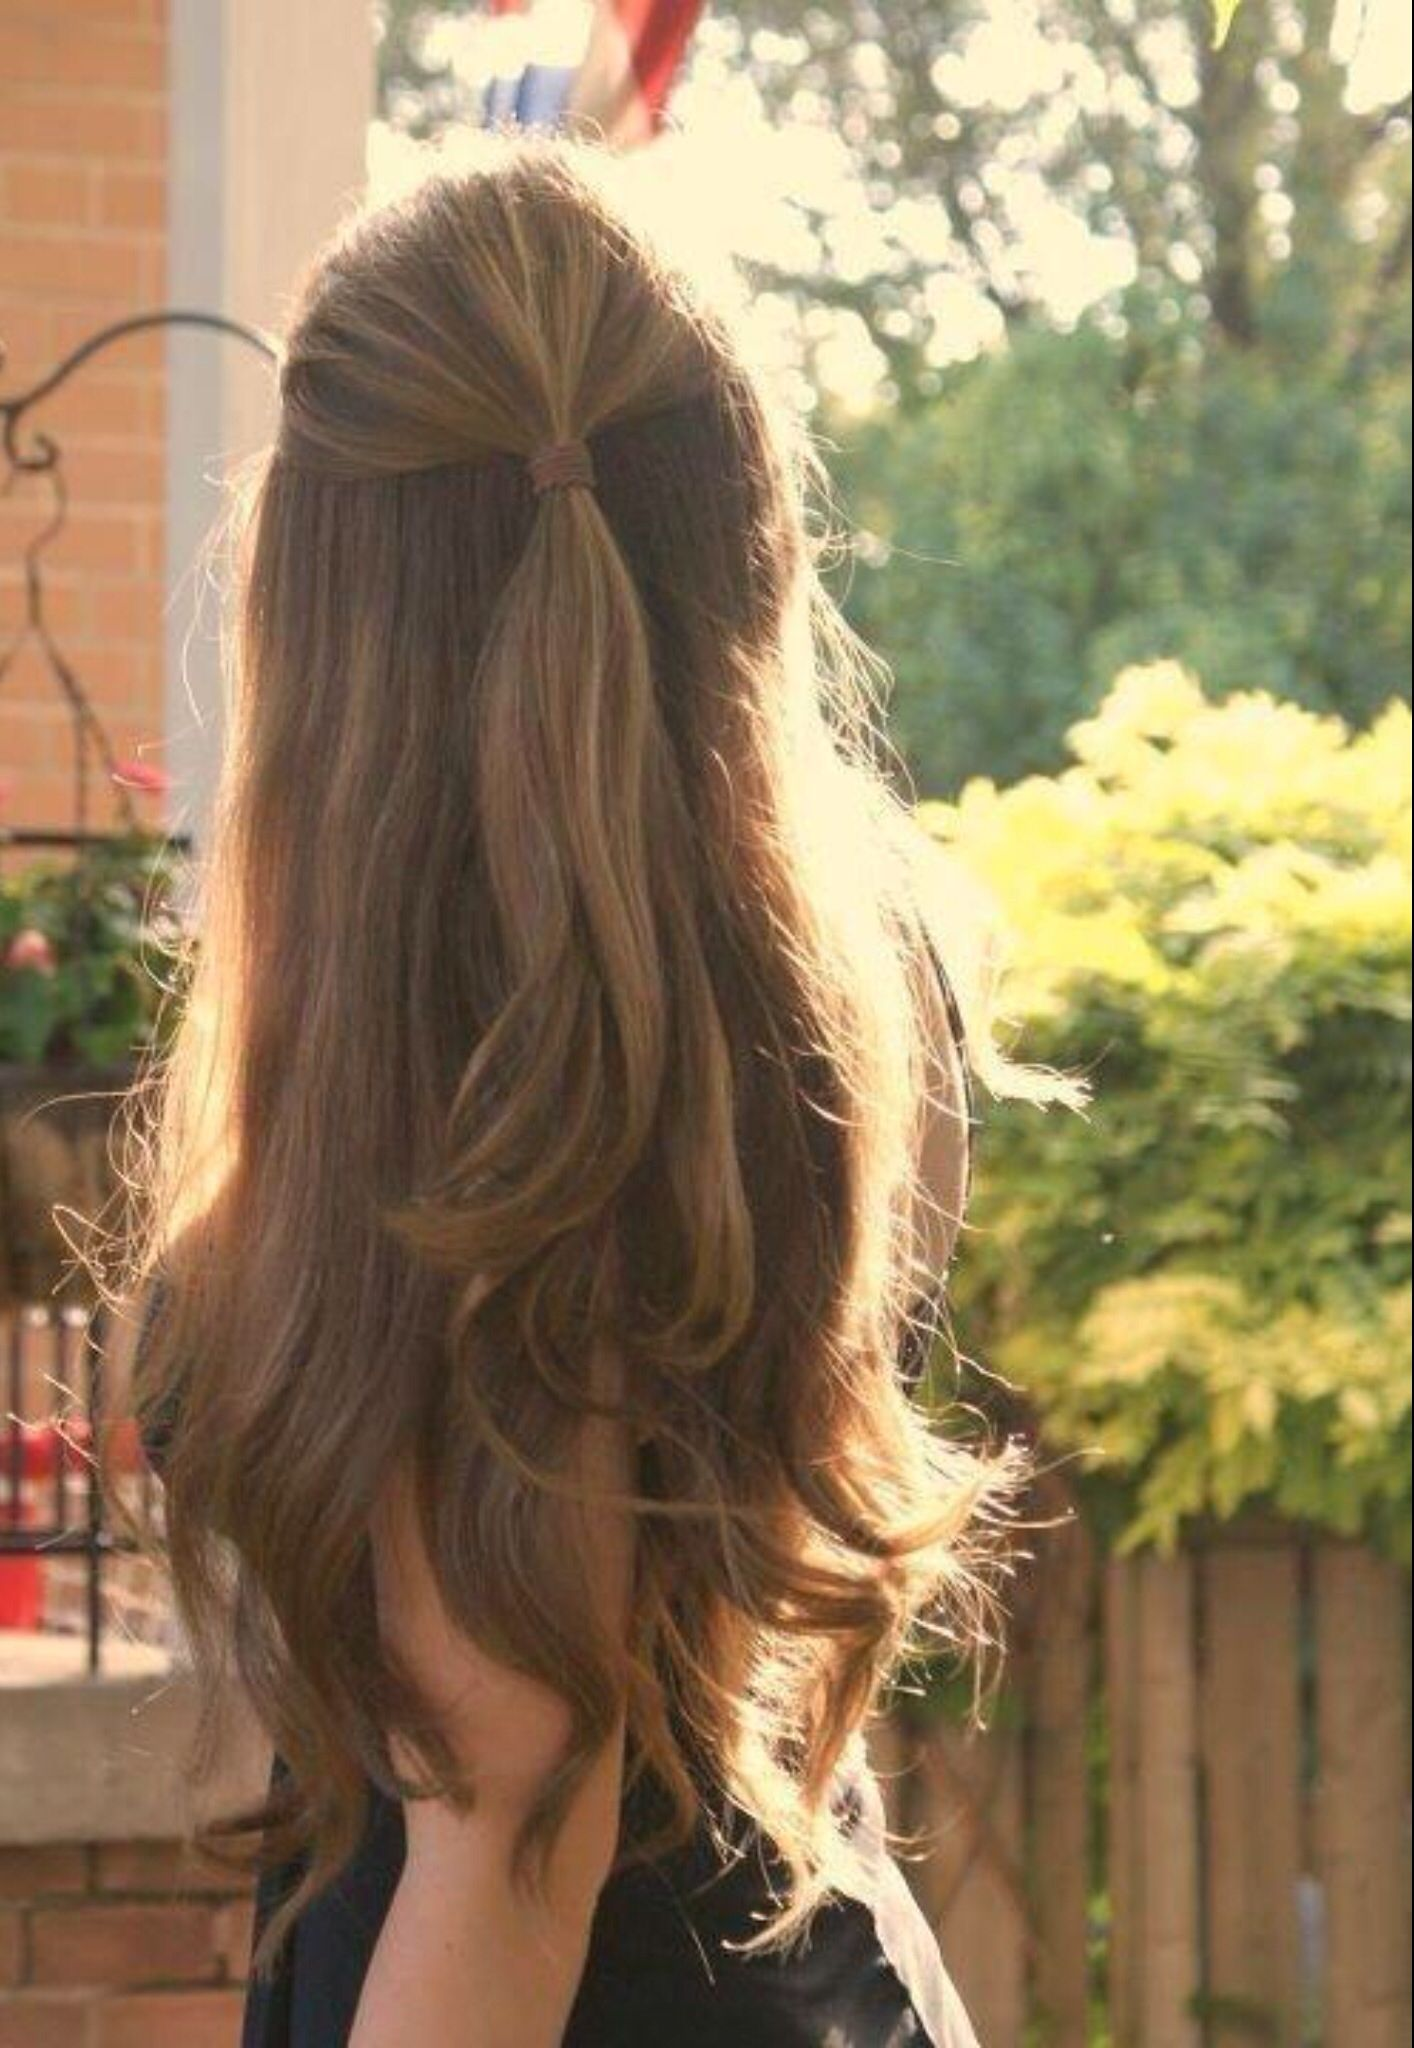 Cute and simple wrap a little piece of hair around the elastic to